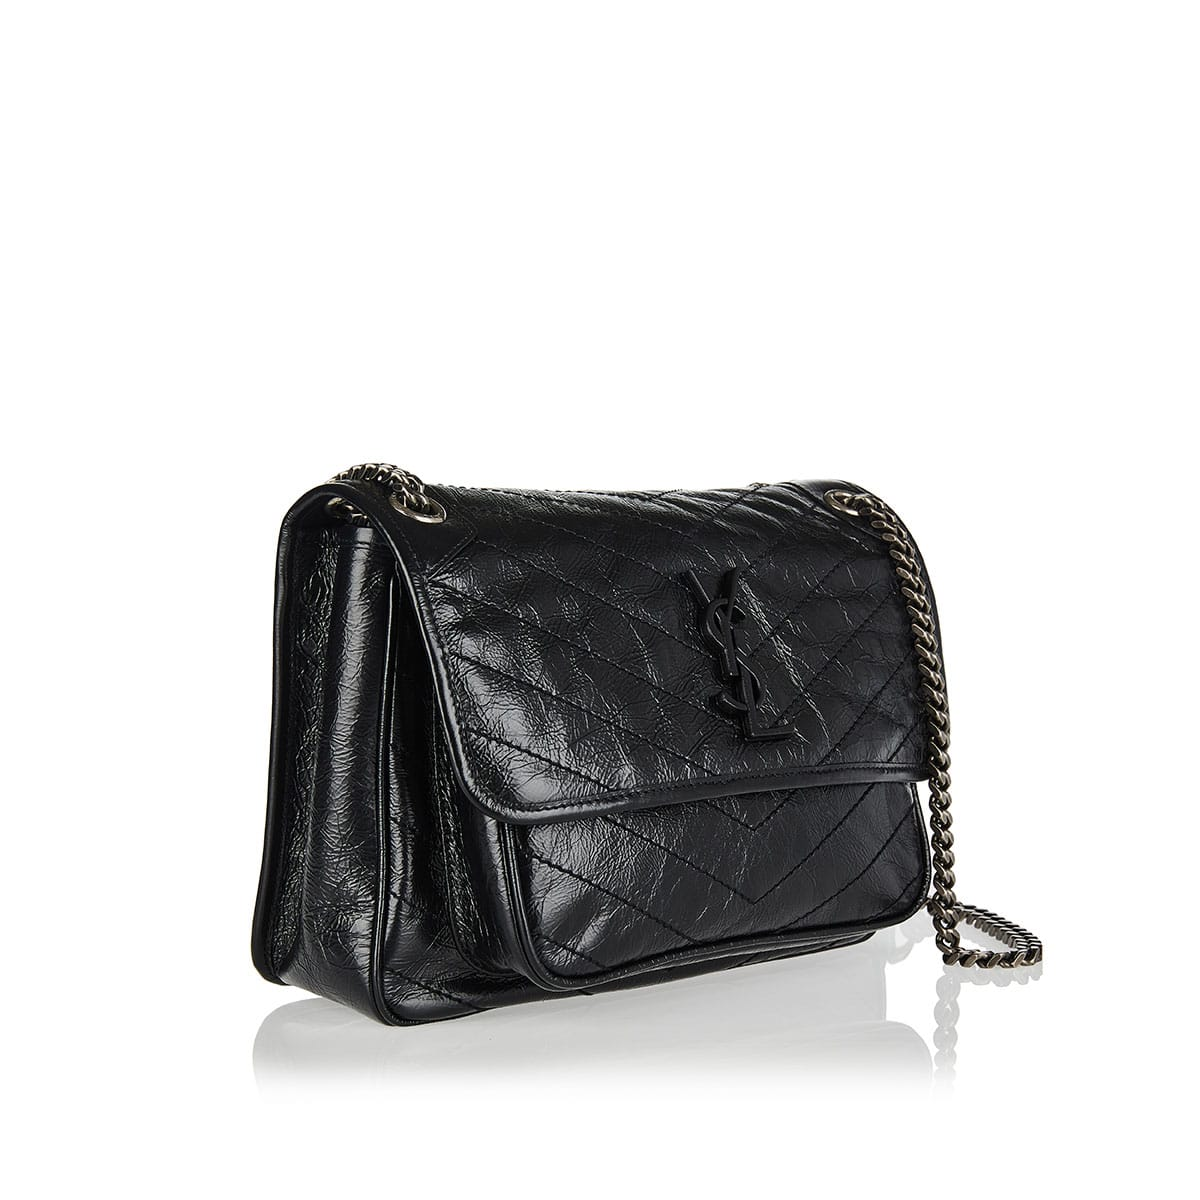 Medium Niki leather shoulder bag